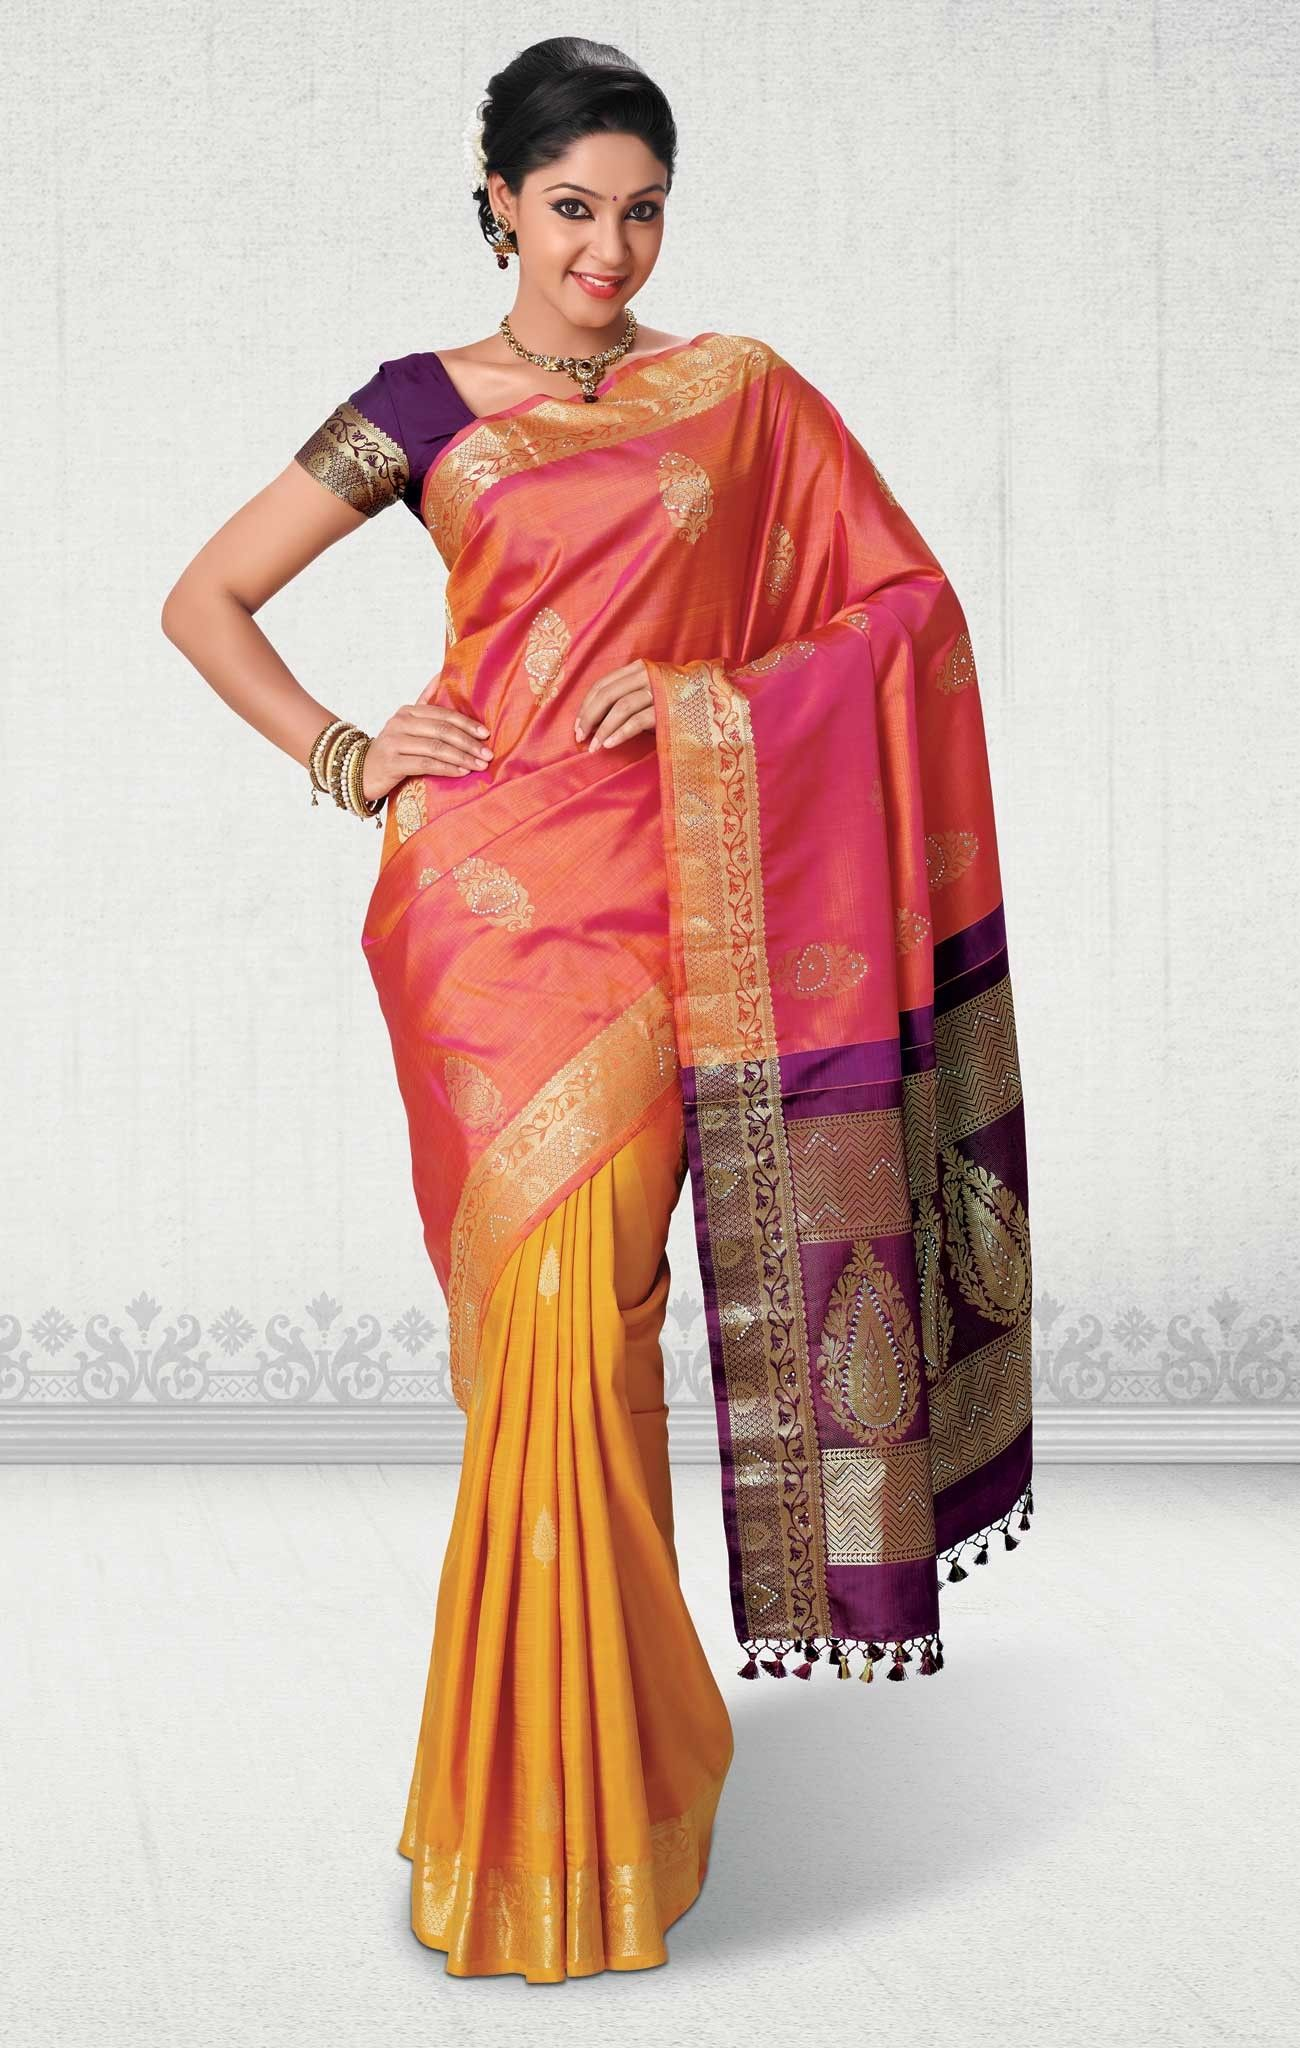 Chennai Silks | Things to Wear(Sarees) | Pinterest | Chennai, Silk ...